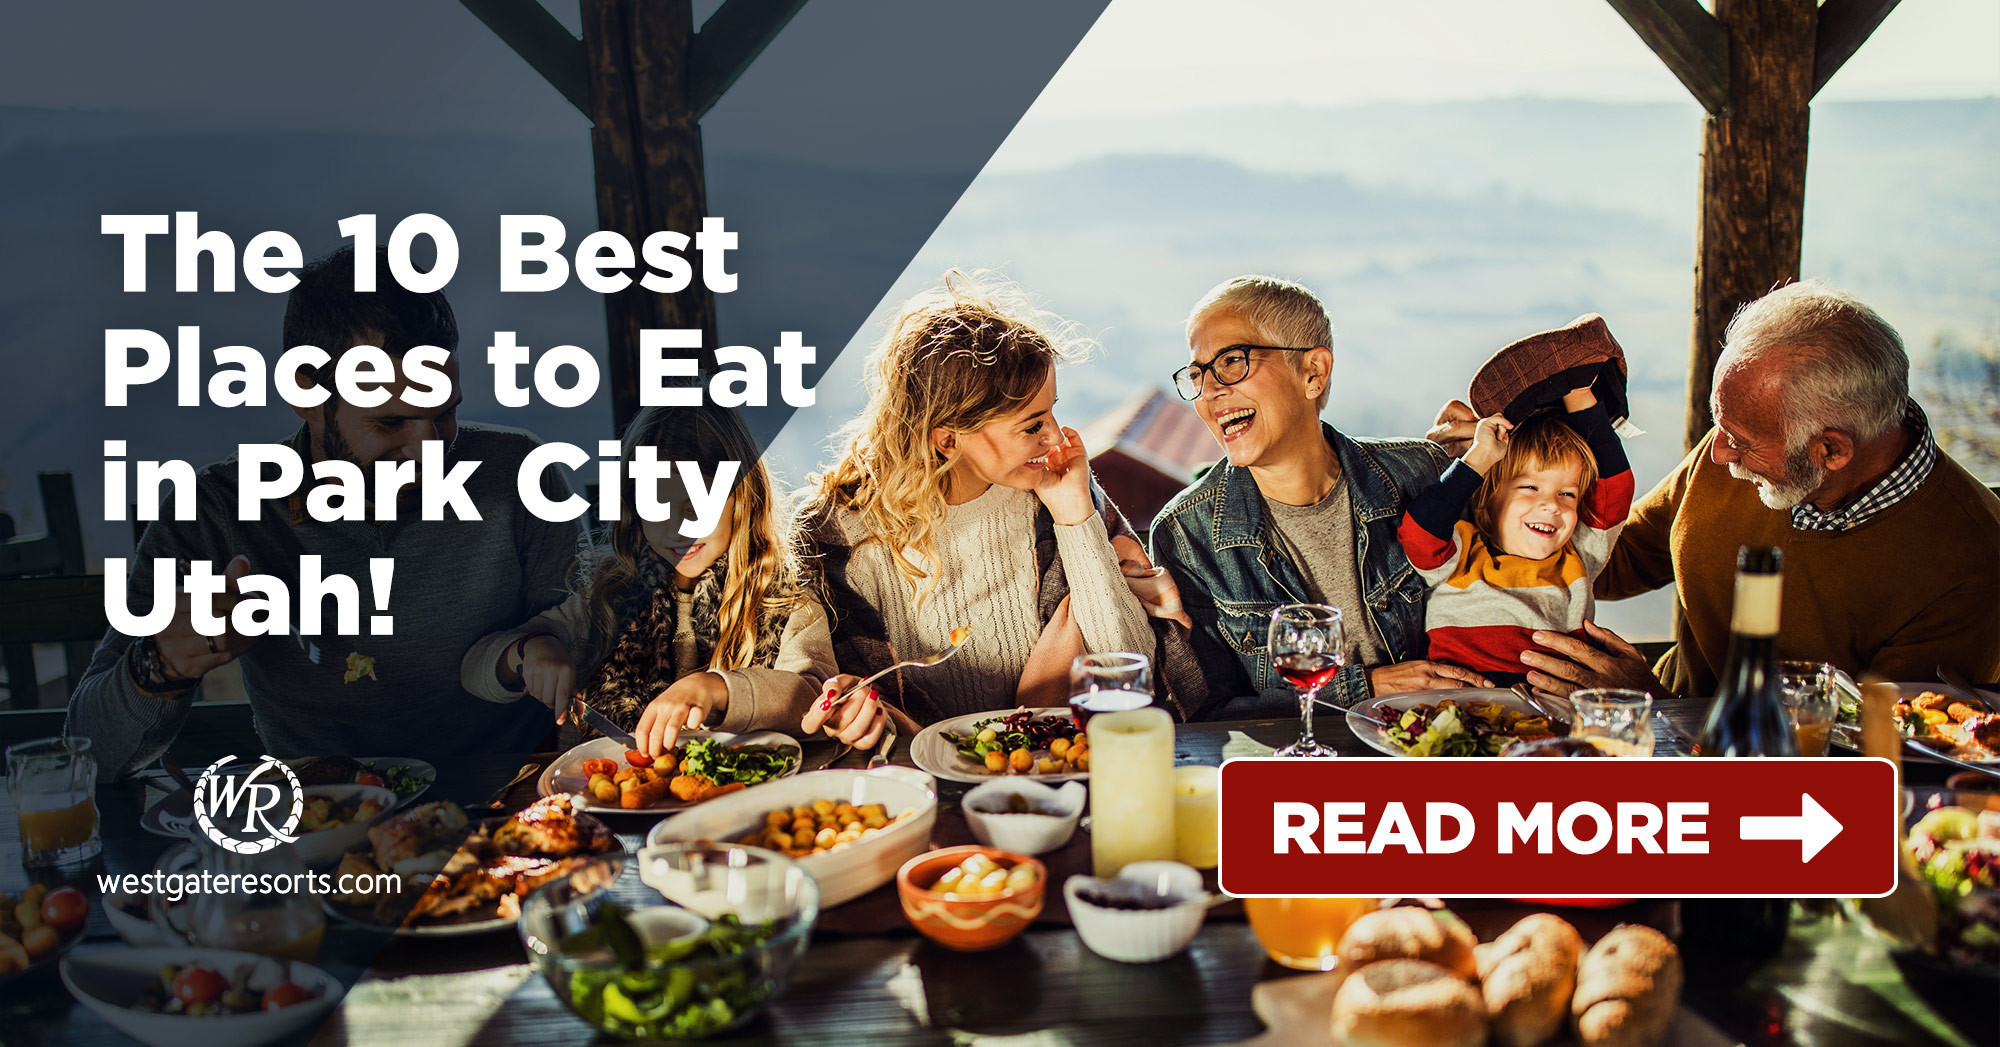 The 10 Best Places To Eat In Park City Utah | The Best Restaurants In Park City